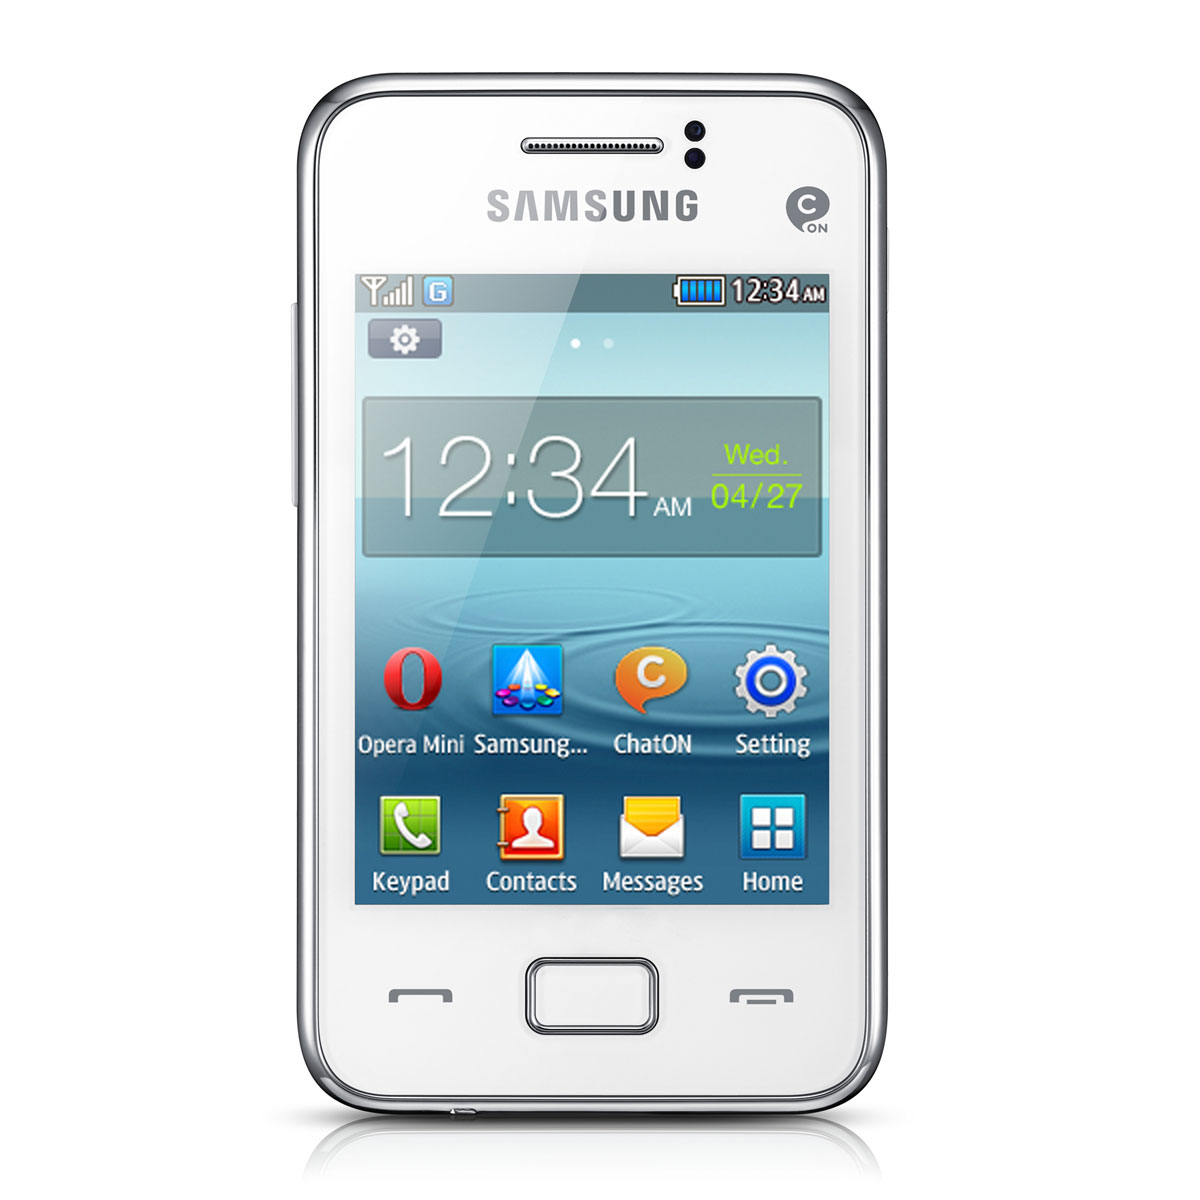 samsung rex 80 gt s5220r blanc mobile smartphone. Black Bedroom Furniture Sets. Home Design Ideas